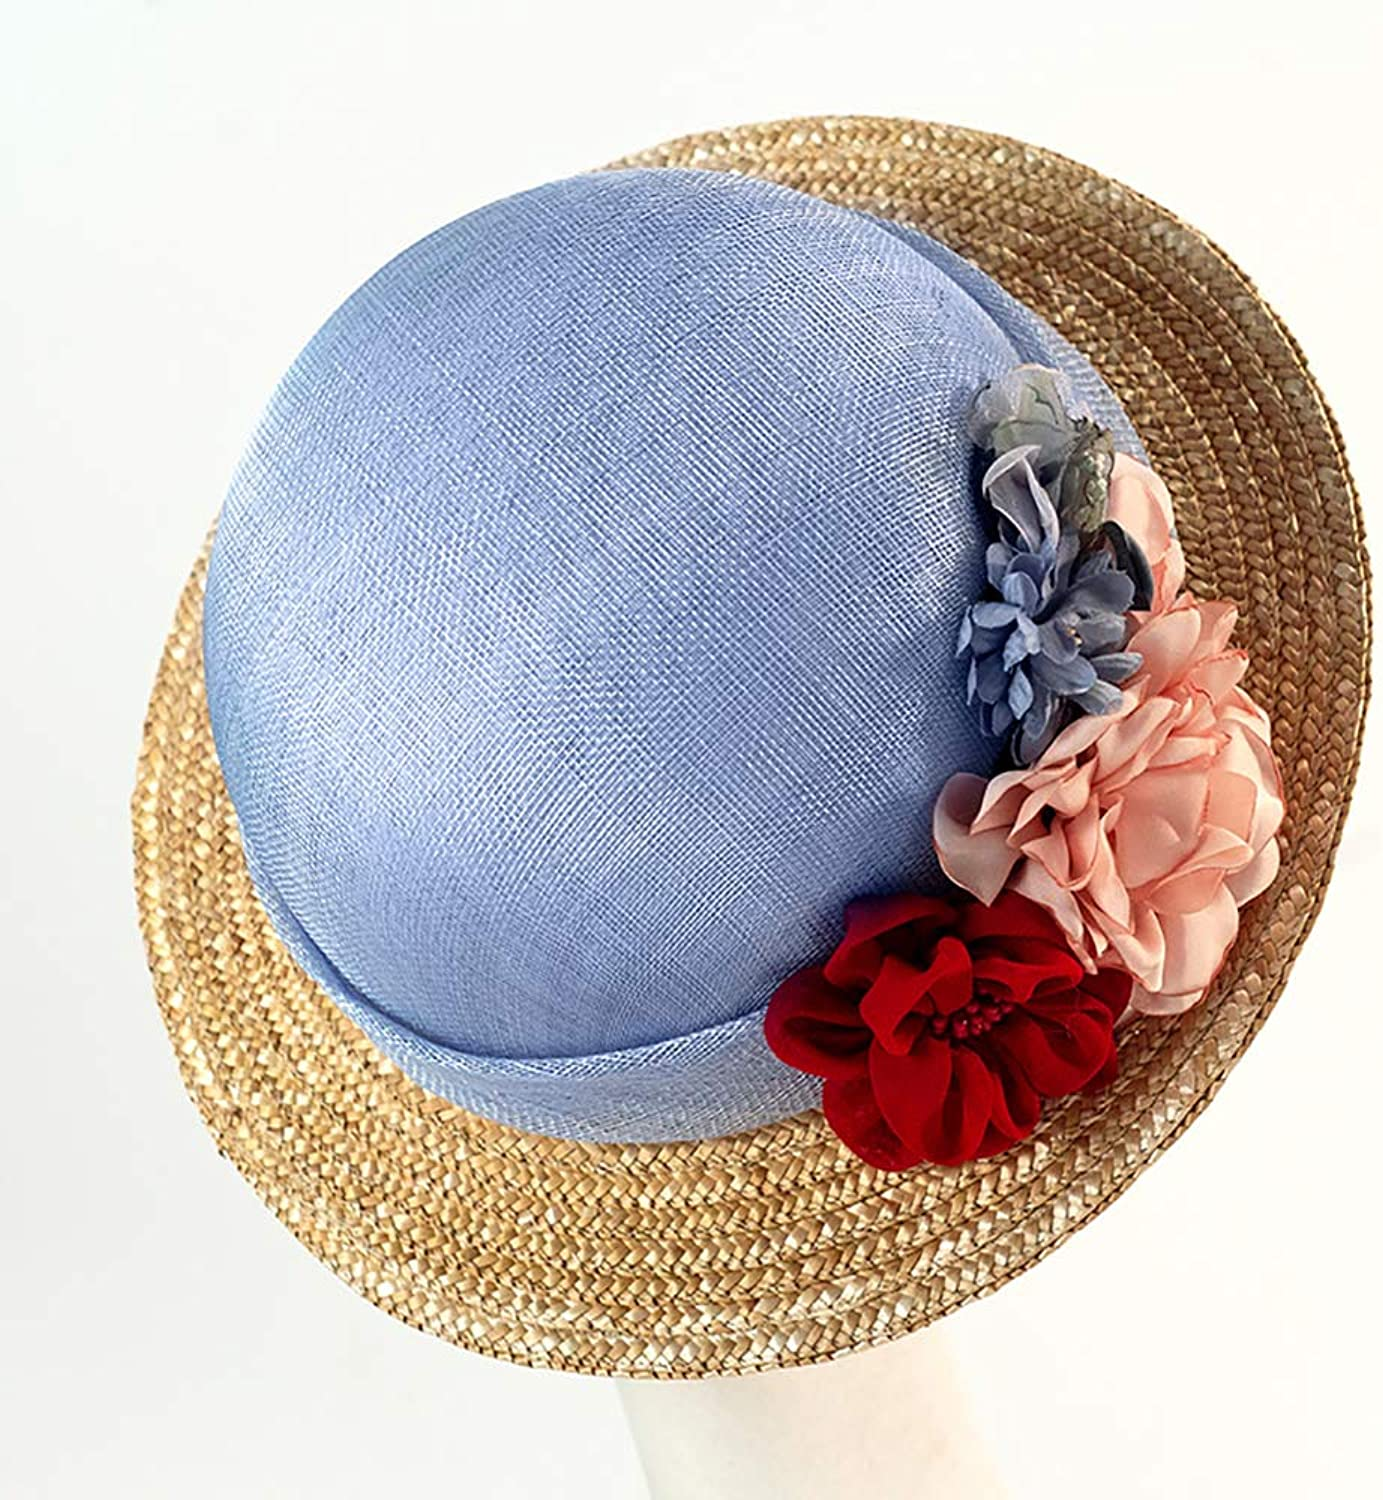 ESOCOME Beach Hat Spring and Summer Visor England Female Hat Rural Straw Hat Flower Hat Woman Sky bluee